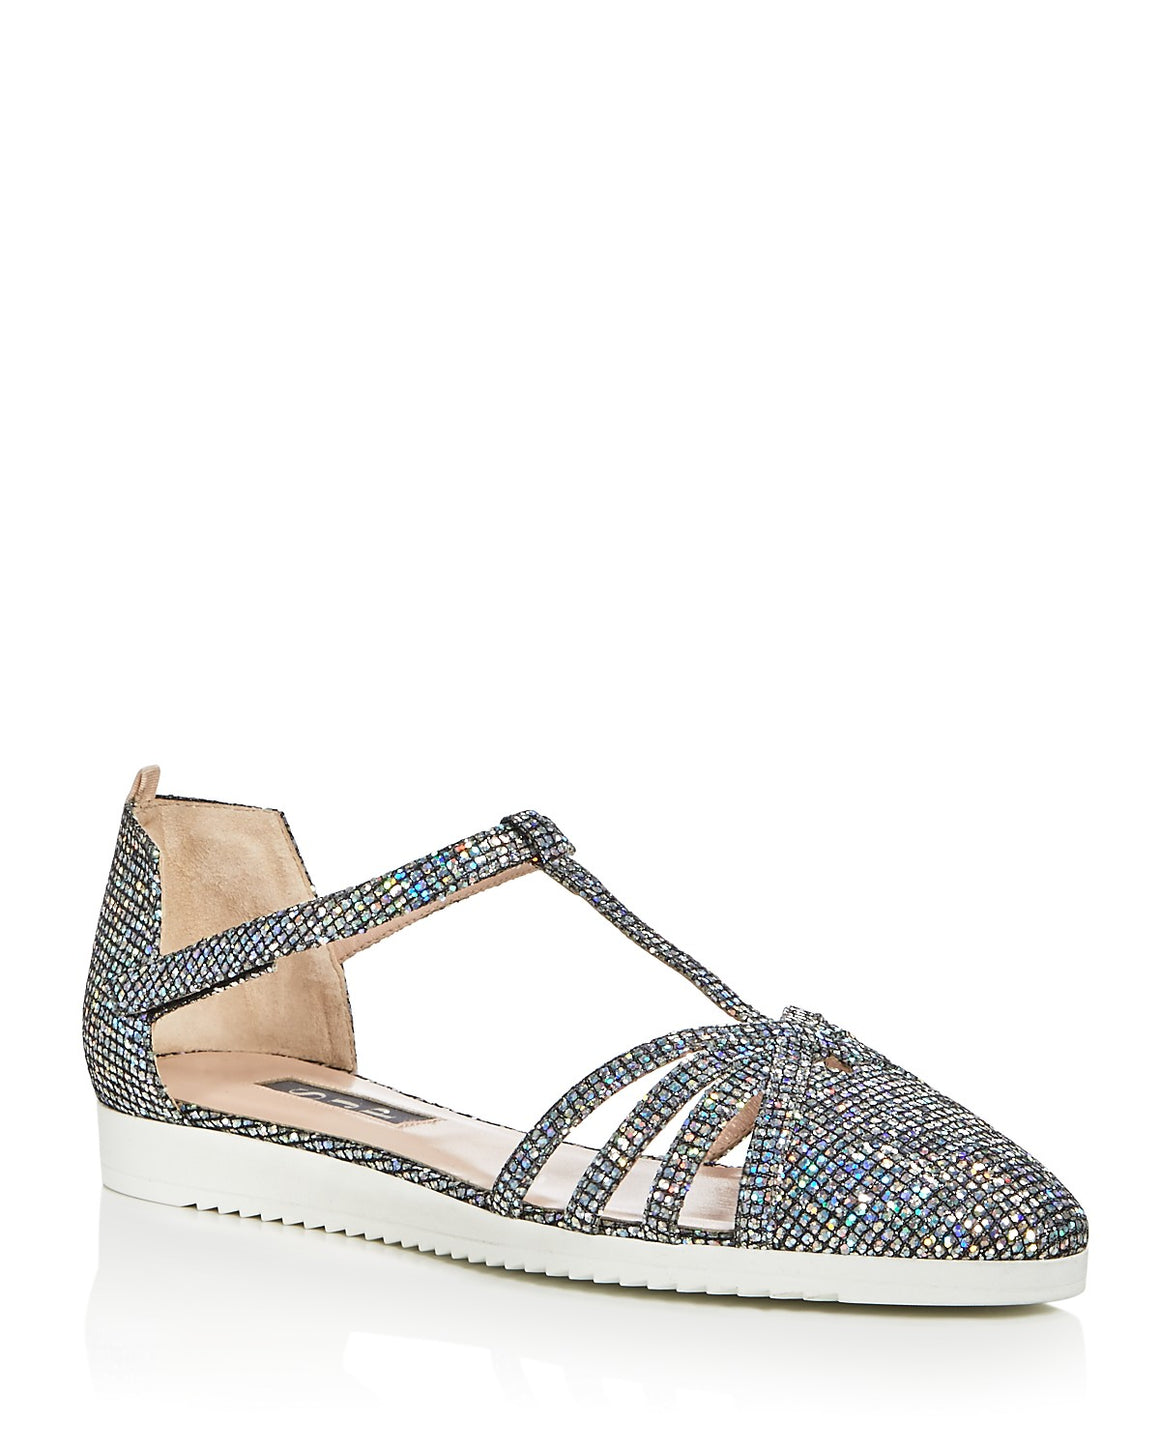 Meteor Scintillate Flats-Shoes-SJP Collection-41-Max & Riley